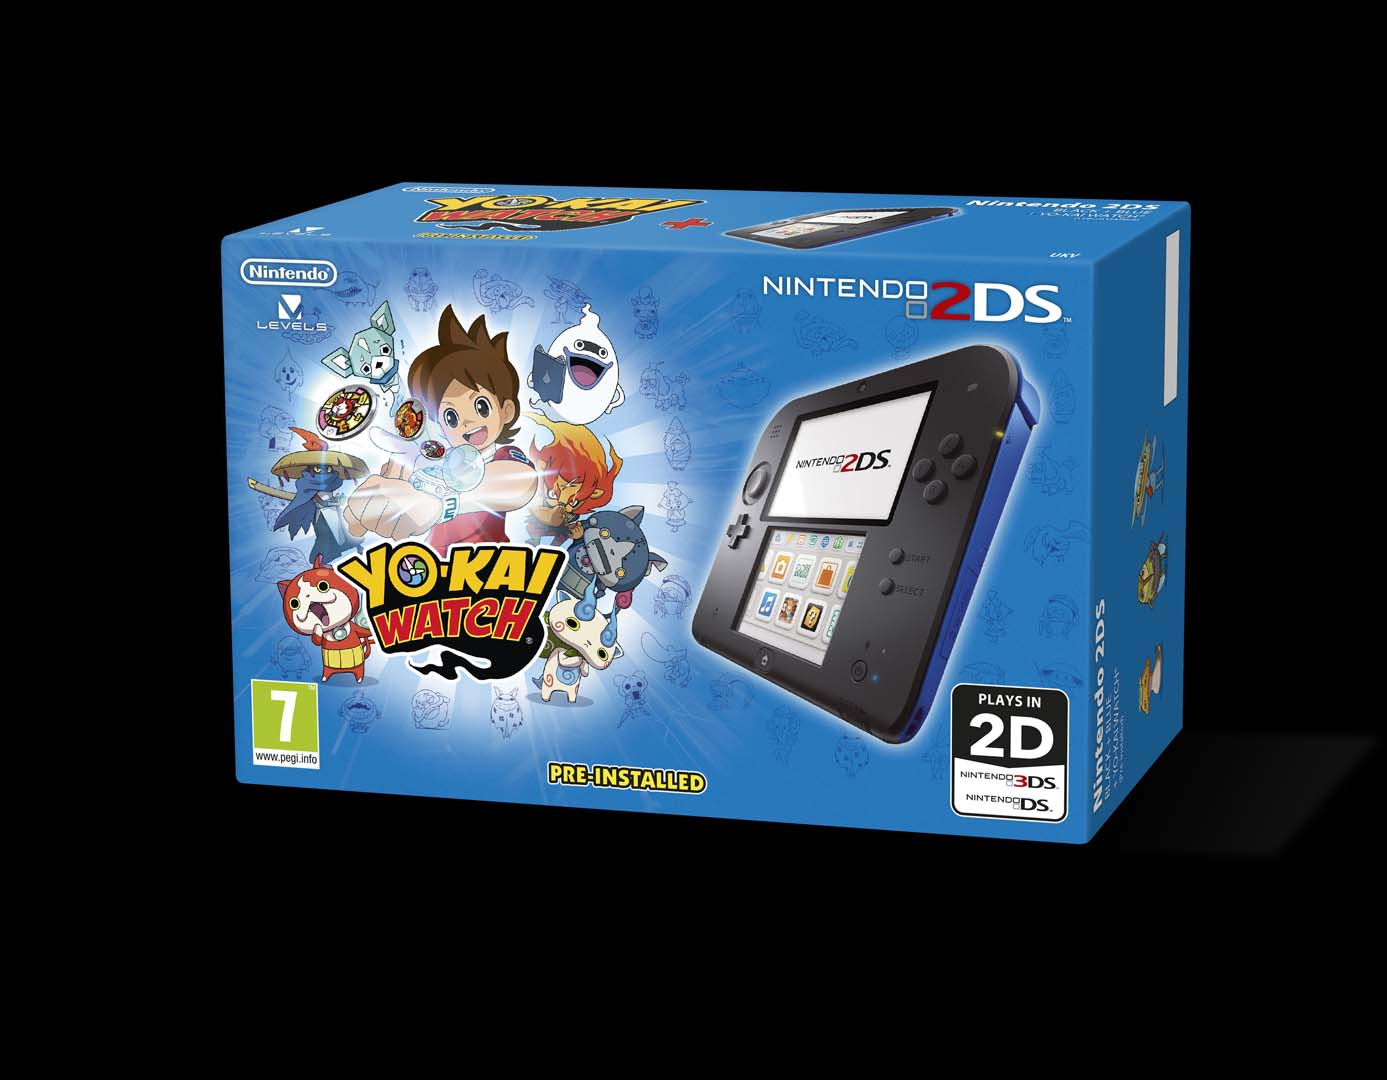 N3DS_YokaiWatch_Packshott_FTR_YO-KAI_Watch_preinstal_Box_3D_PS_UKV